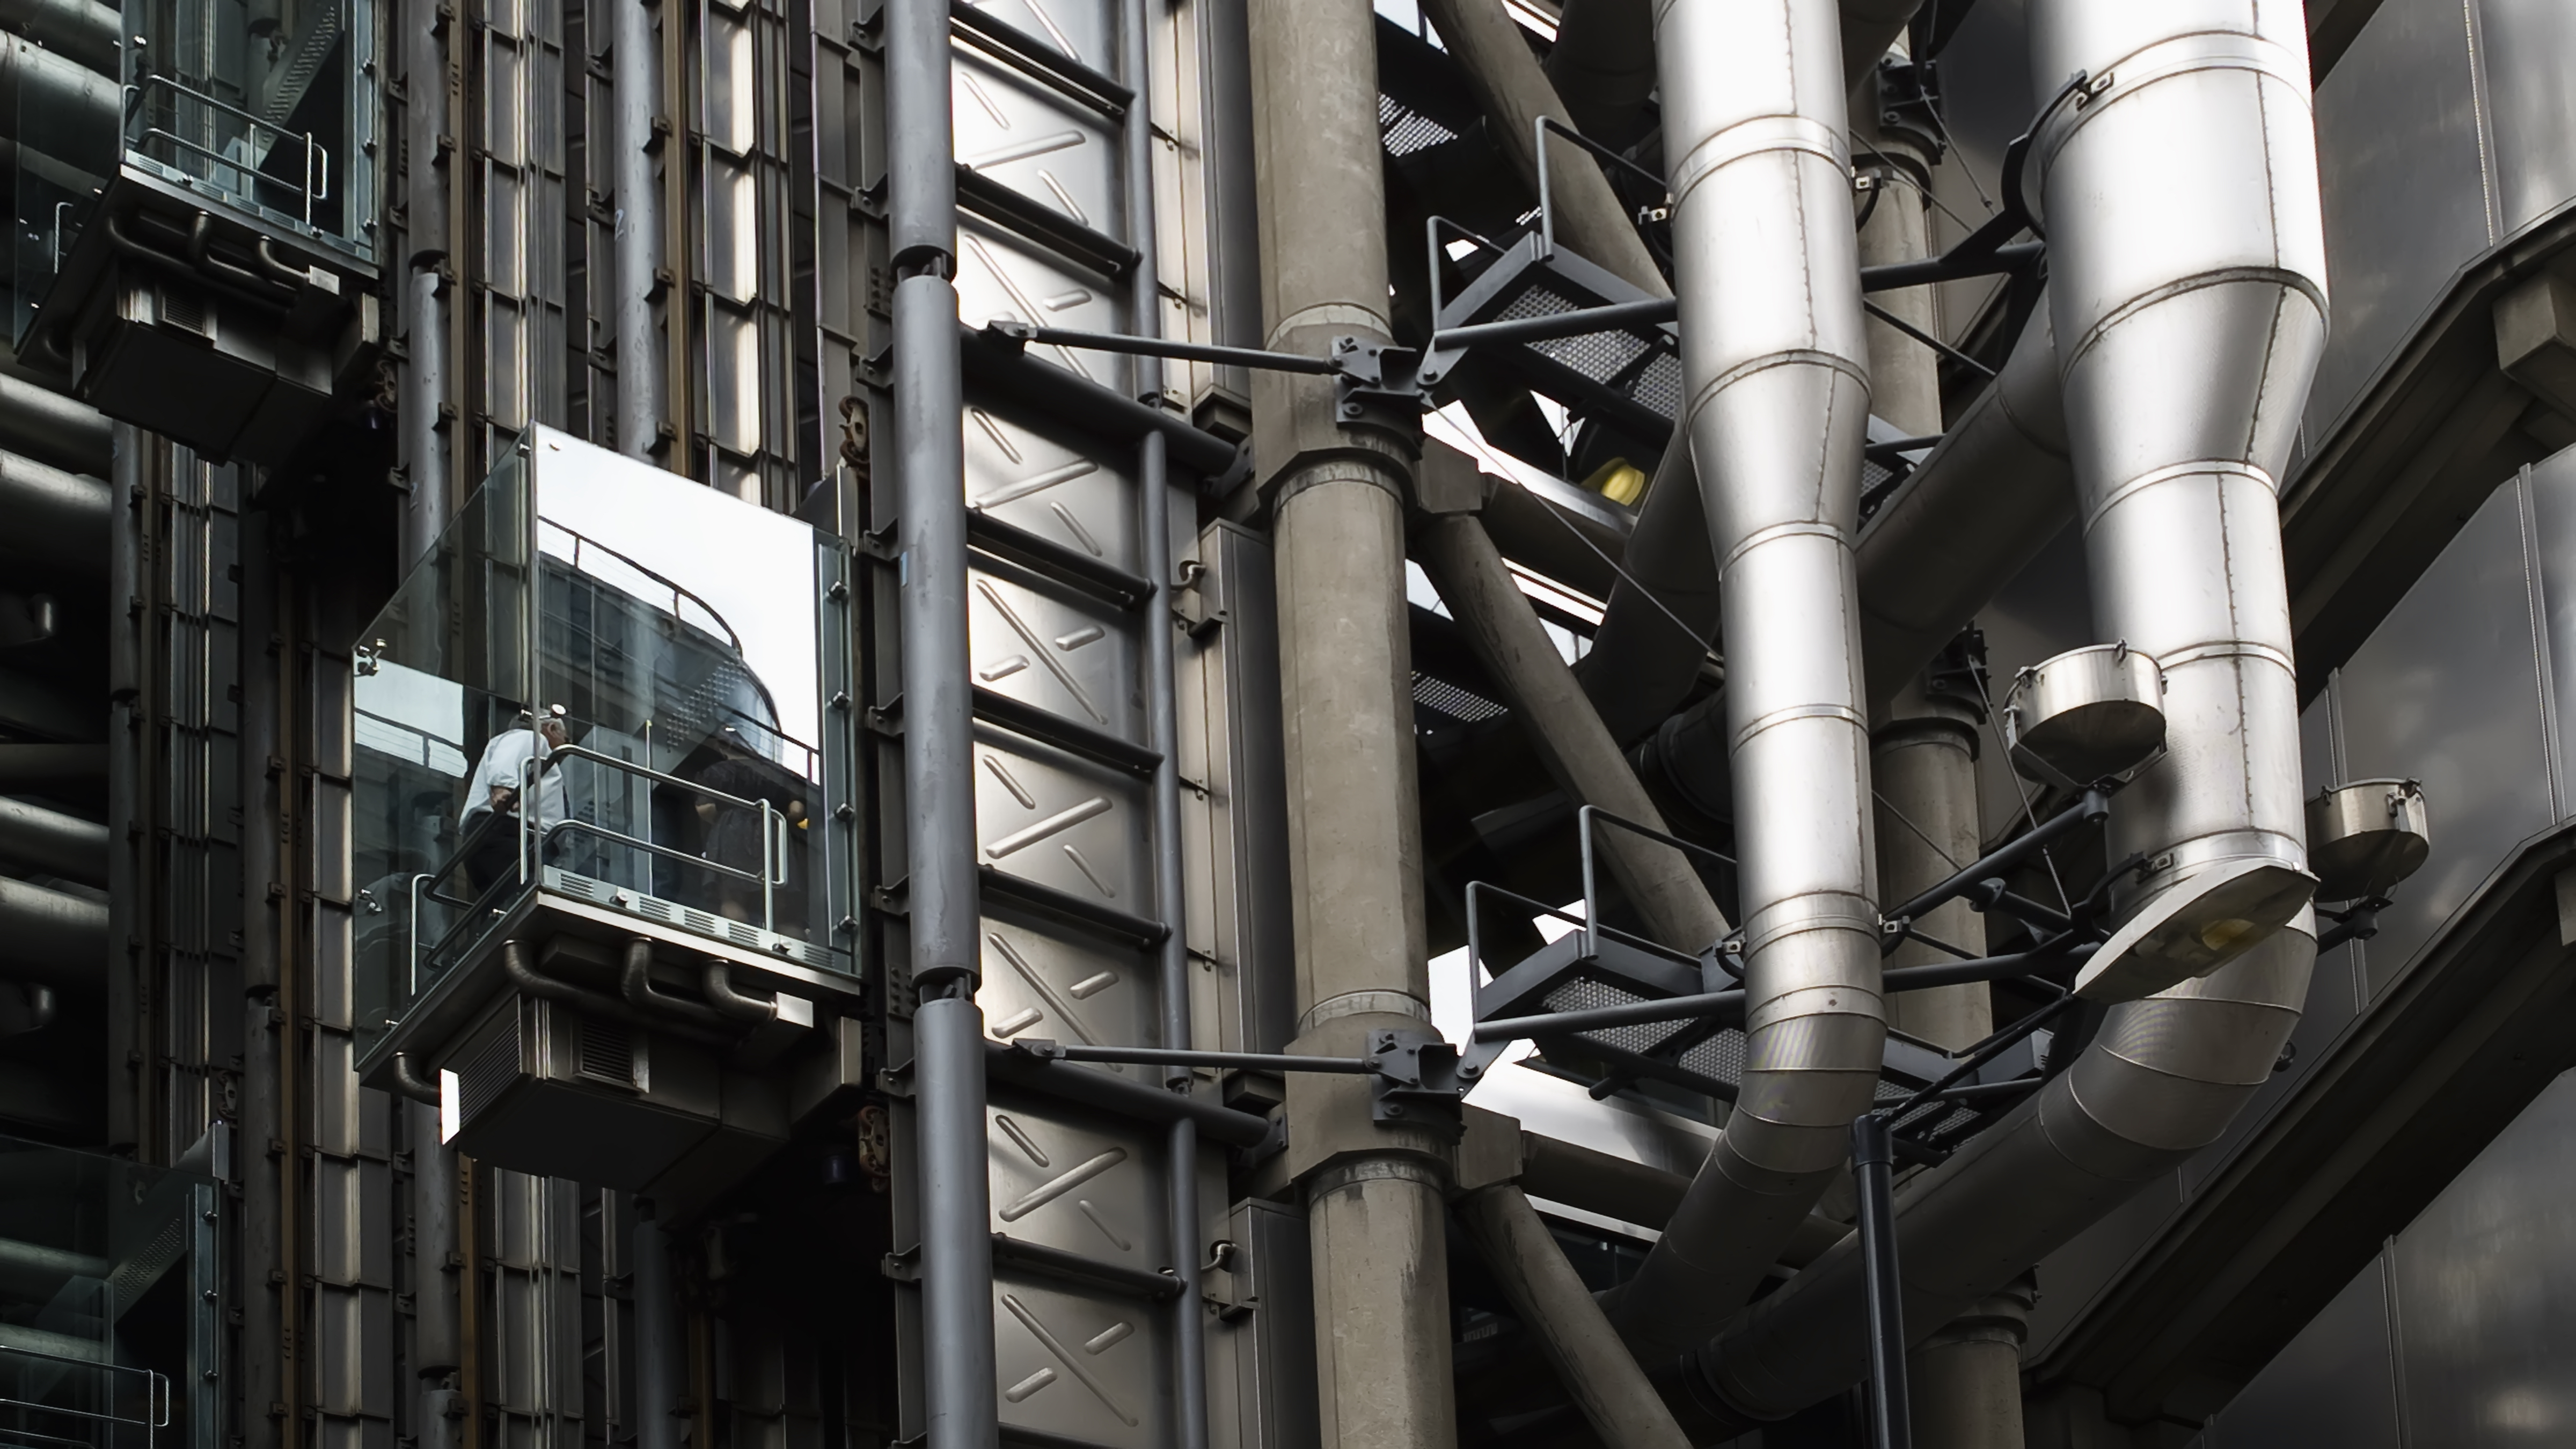 Up and Down in the City, Bogaert, Building, Elevator, Industrial, HQ Photo